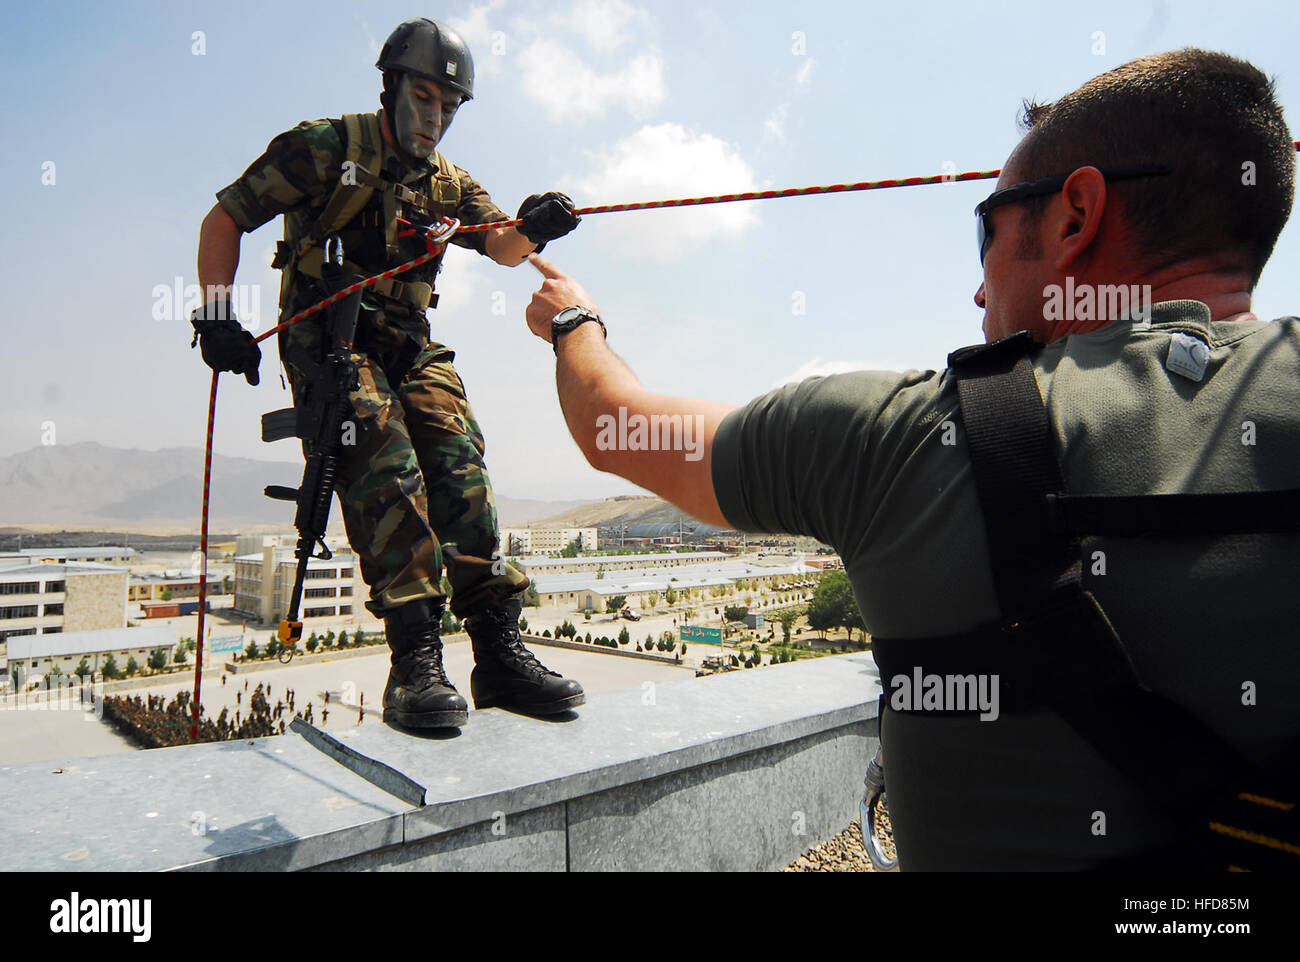 KABUL, Afghanistan (August 9, 2010)  French Army Staff Sgt. Virion, right, an EPIDOTE program Afghan National Army - Stock Image